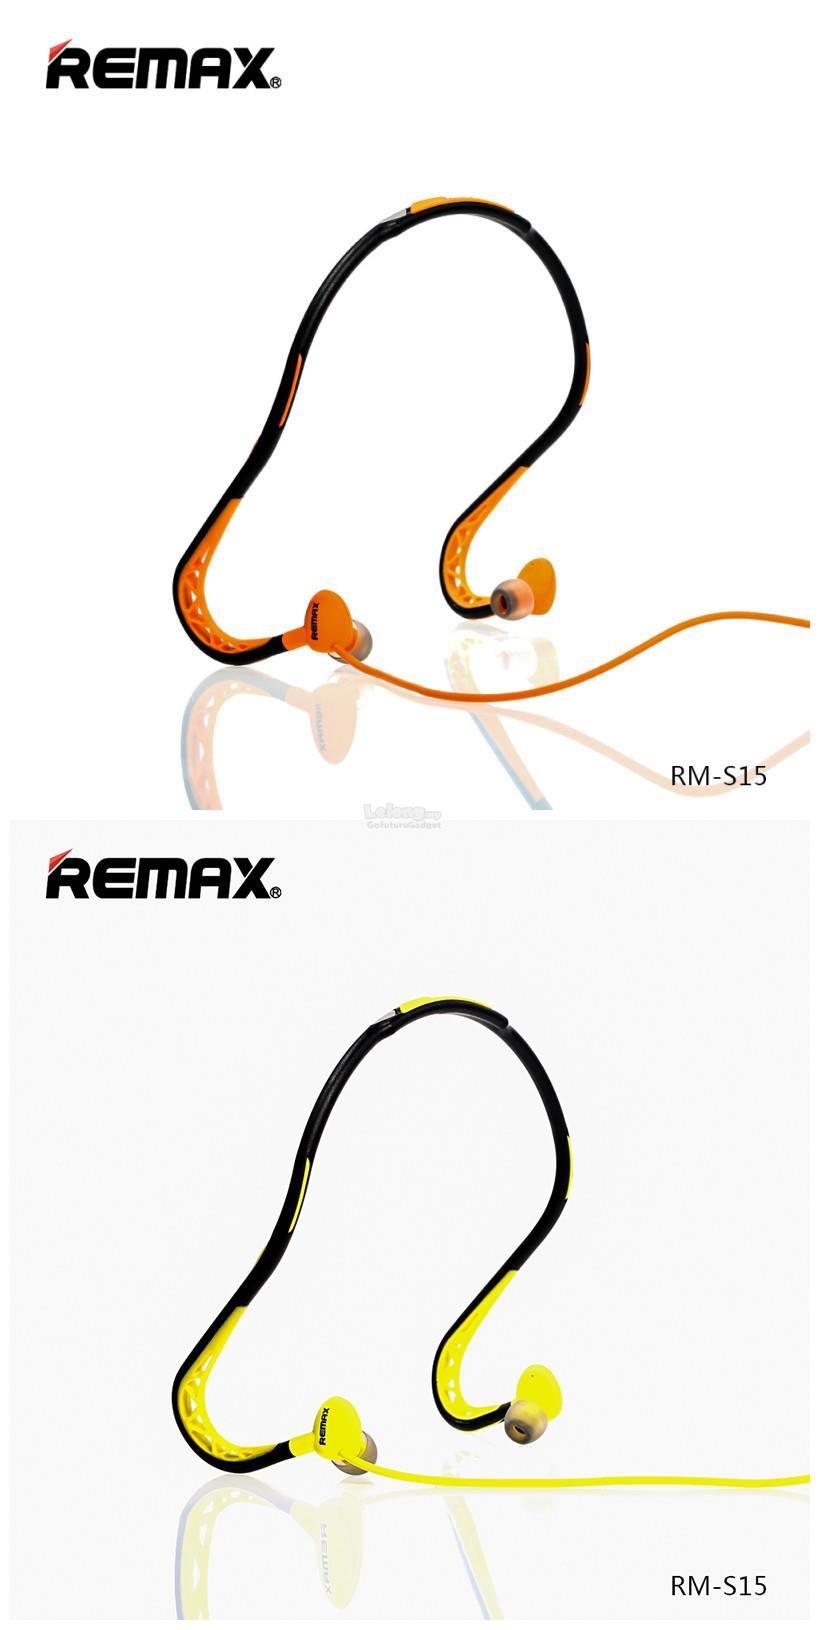 Remax RM-S15 Sports Wired Headset Neckband Headphone Stereo Earpiece